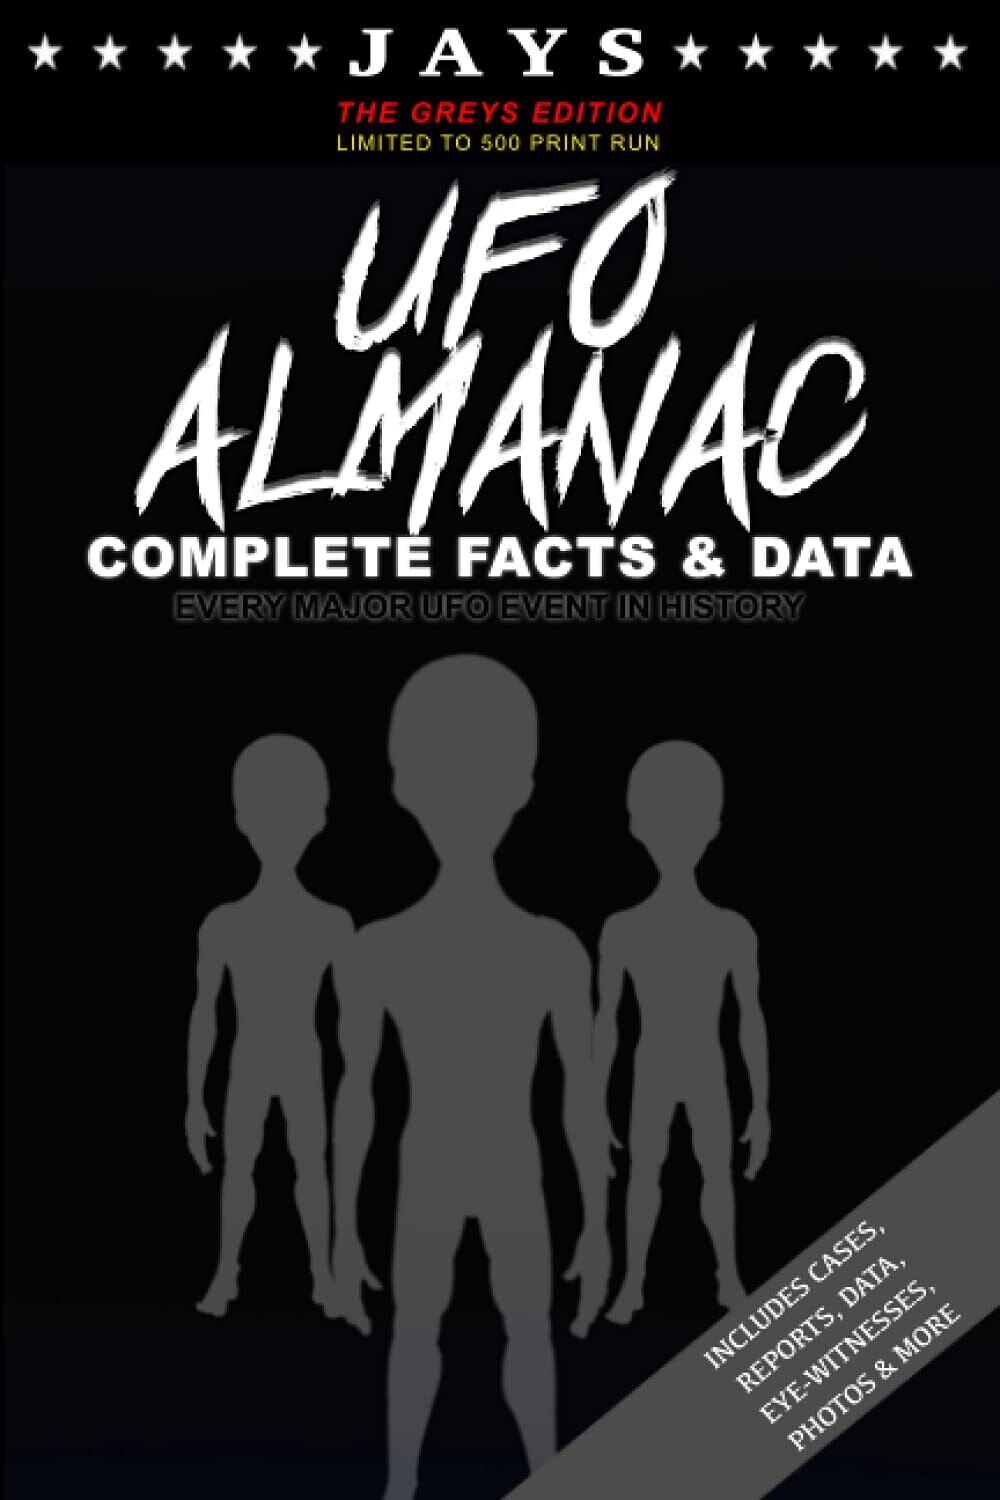 Jays UFO Almanac [#9 GREYS EDITION - LIMITED TO 500 PRINT RUN] Complete Facts & Data - Every Major UFO Case in History